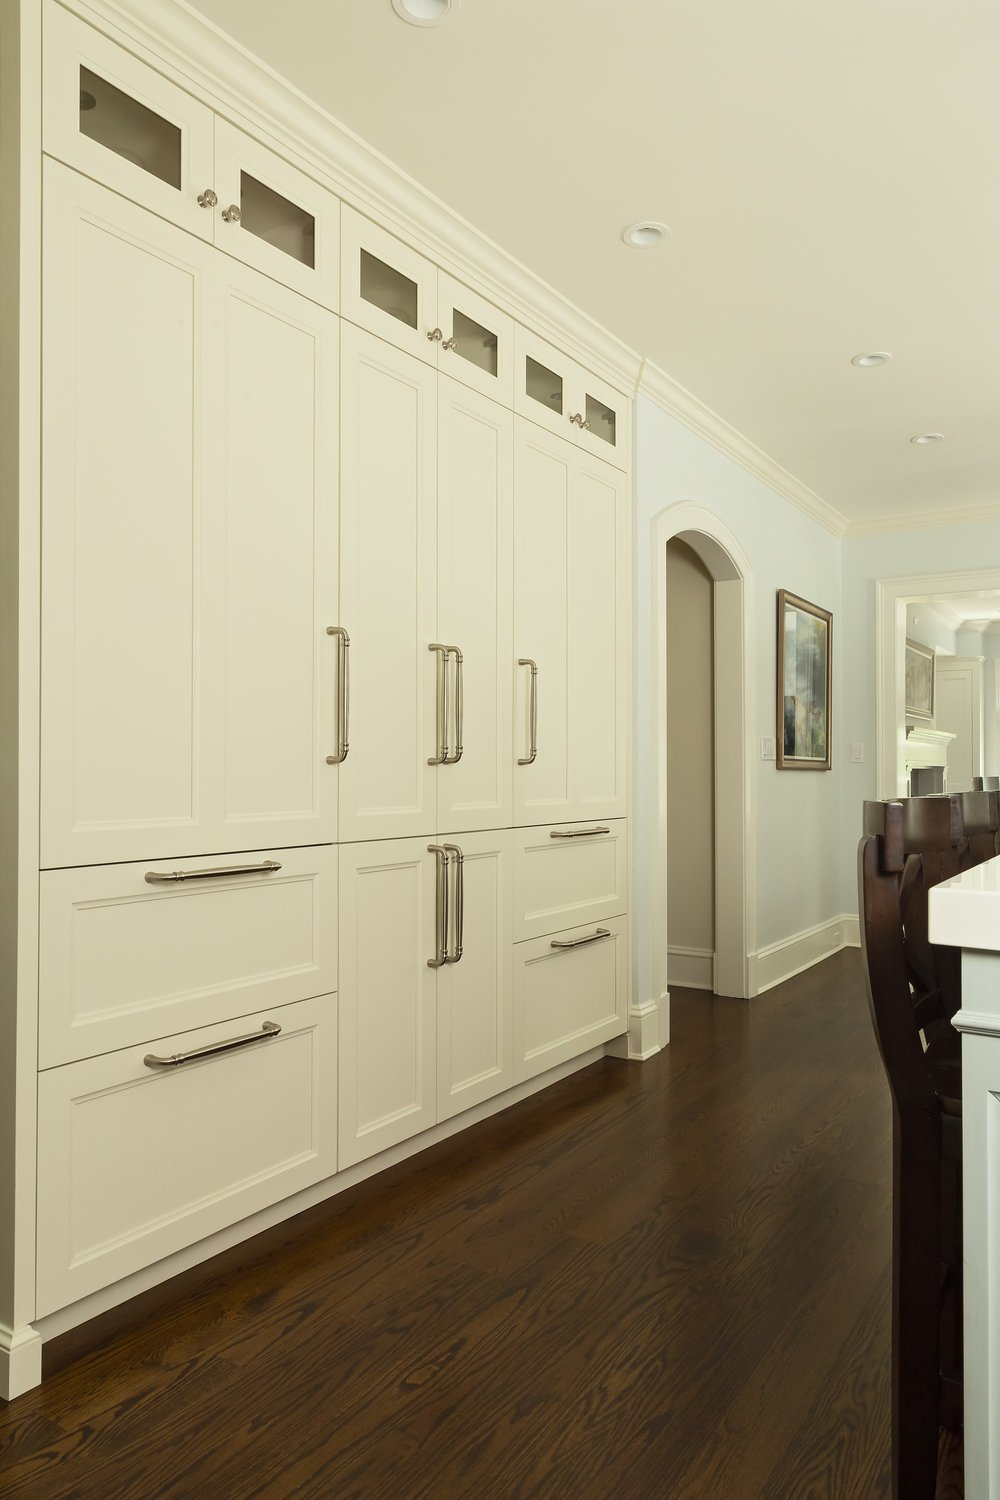 Transitional style kitchen with large cabinets and drawers